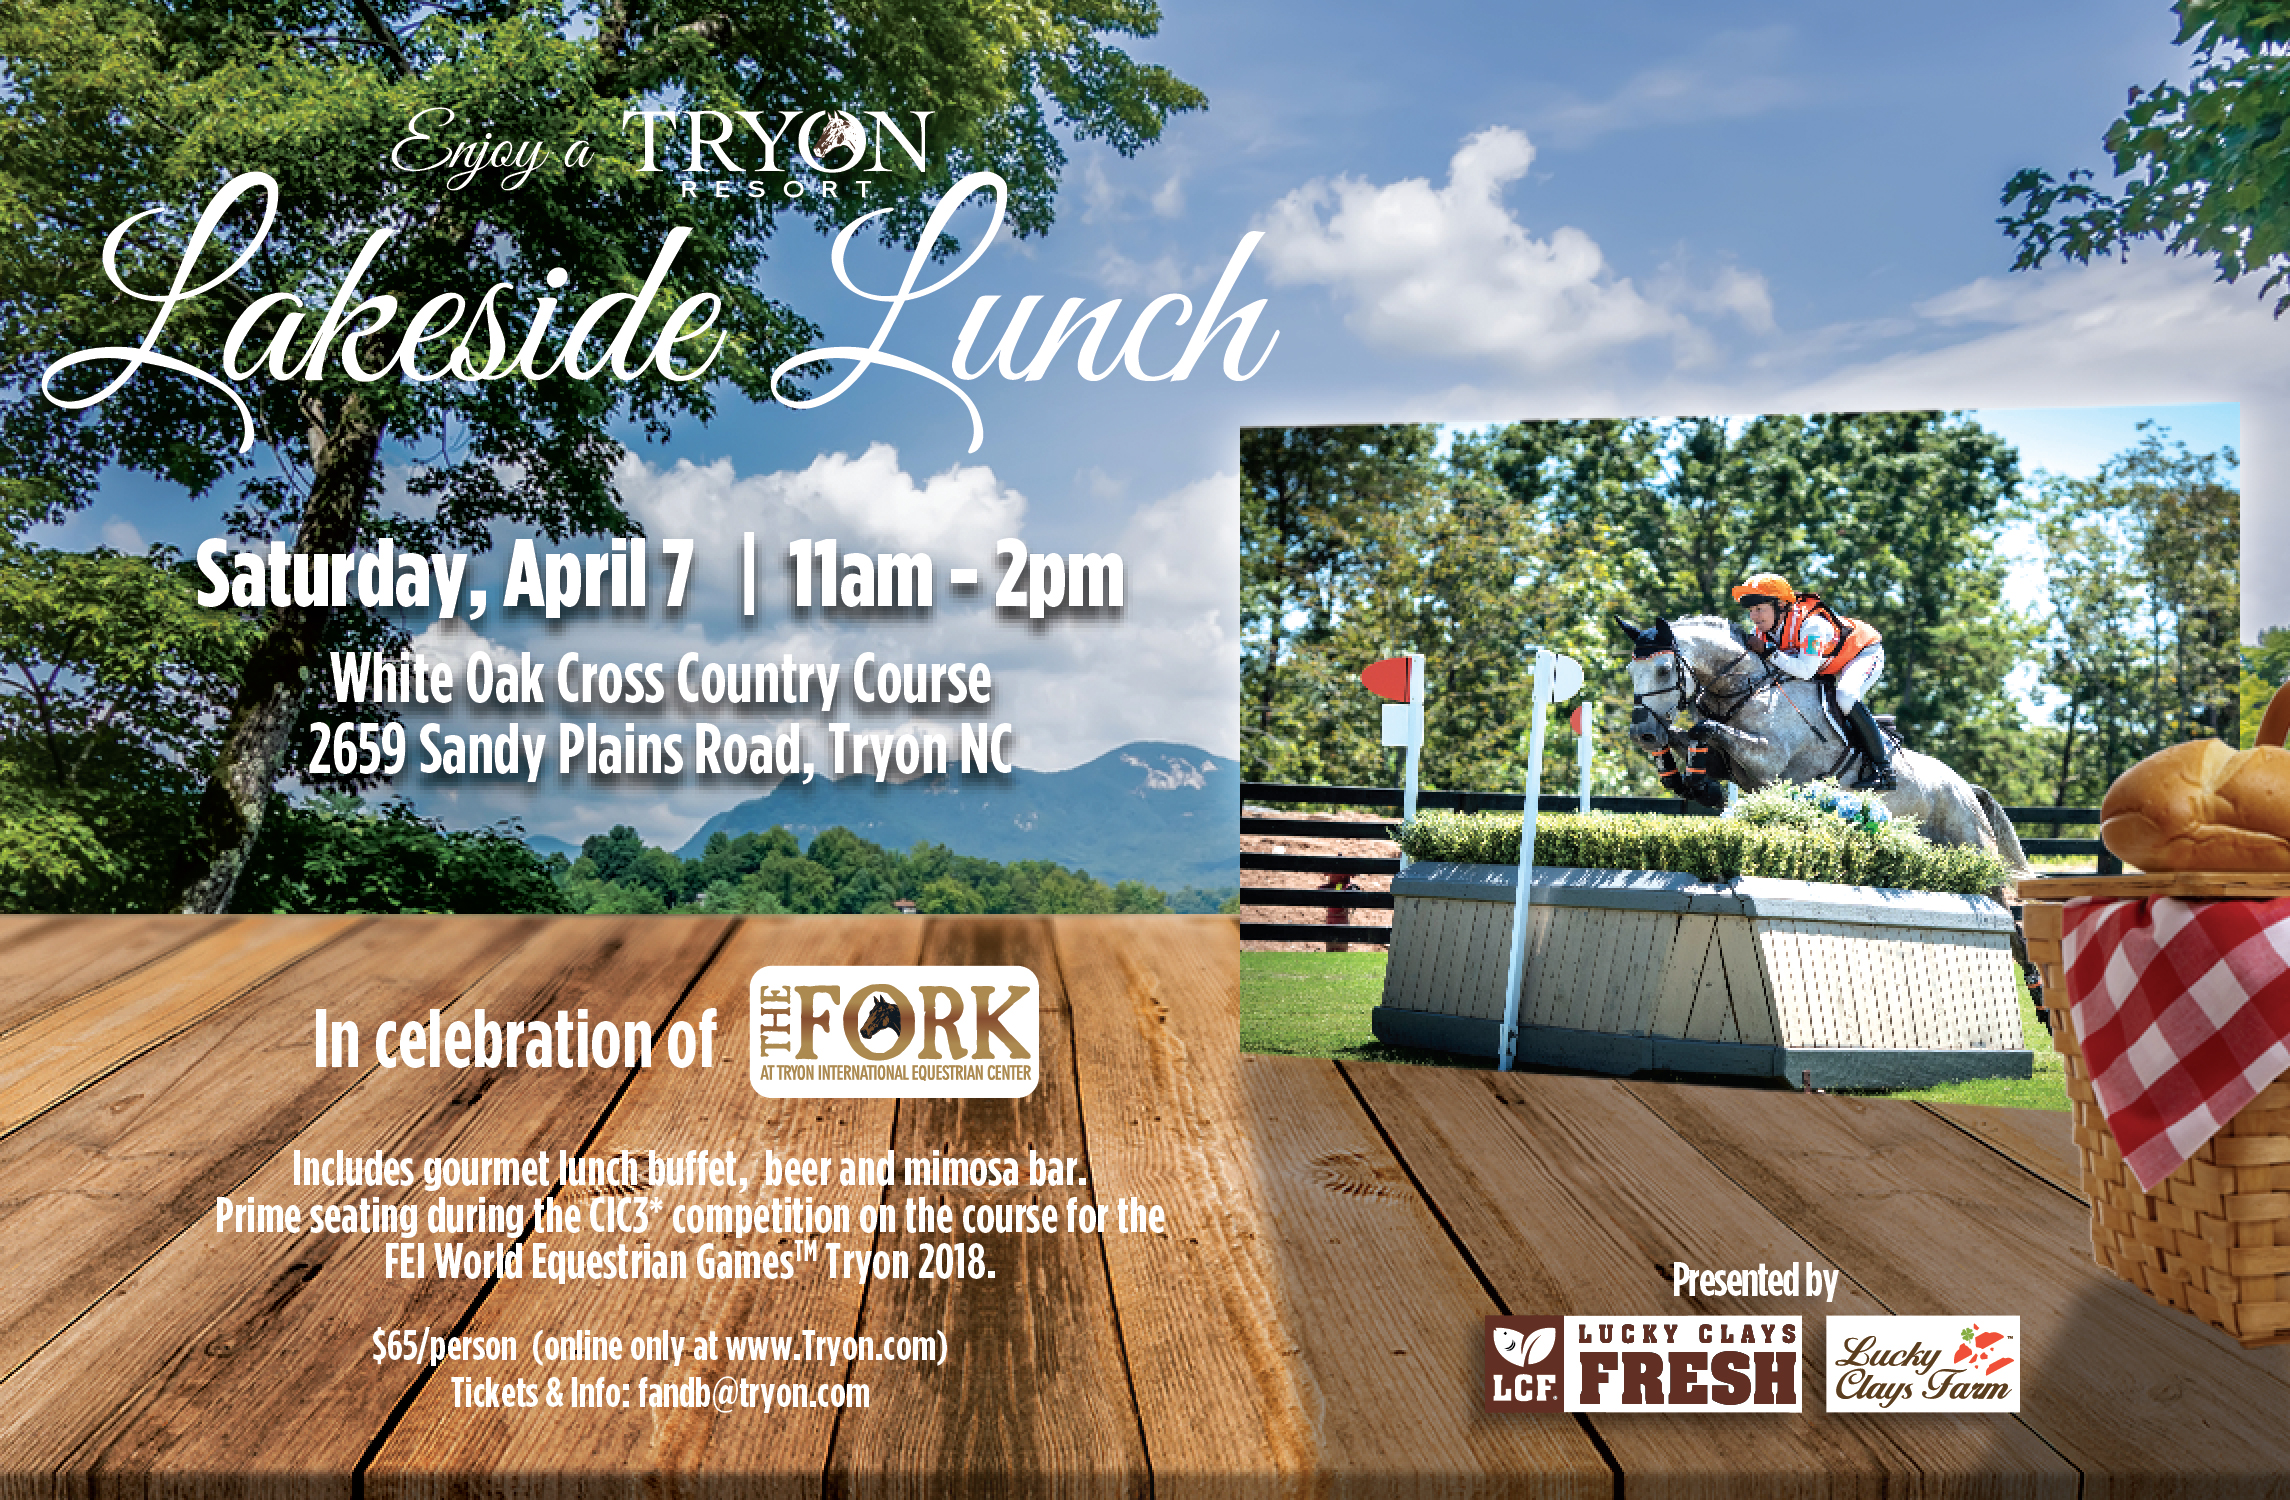 Click HERE to get your tickets to the 2018 Lakeside Lunch